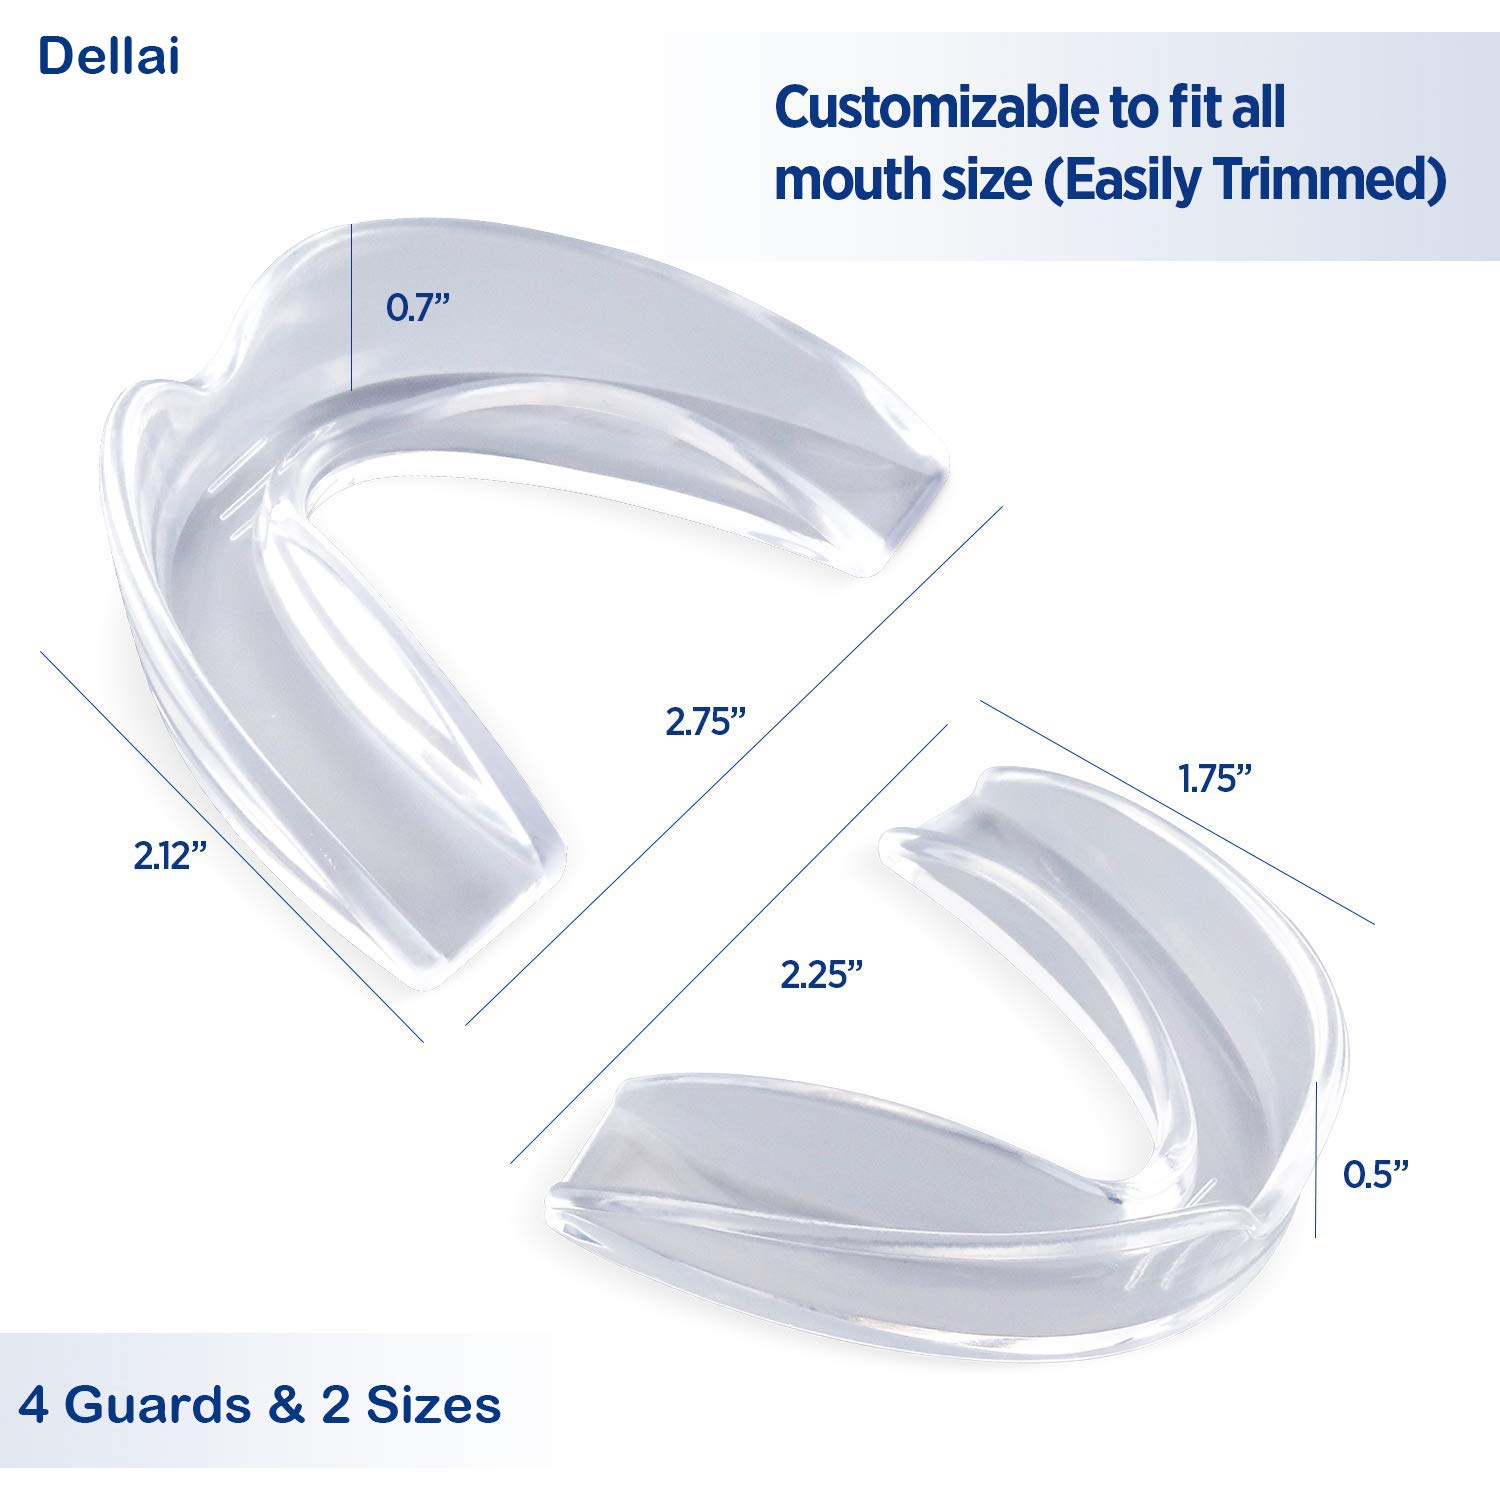 Mouth guard for grinding teeth, Lab Professional Moldable Dental Guard, Medical Silicone Mouth Night Guards, Moldable Dental Night Guards for teeth grinding, BPA Latex Free, FDA Approved